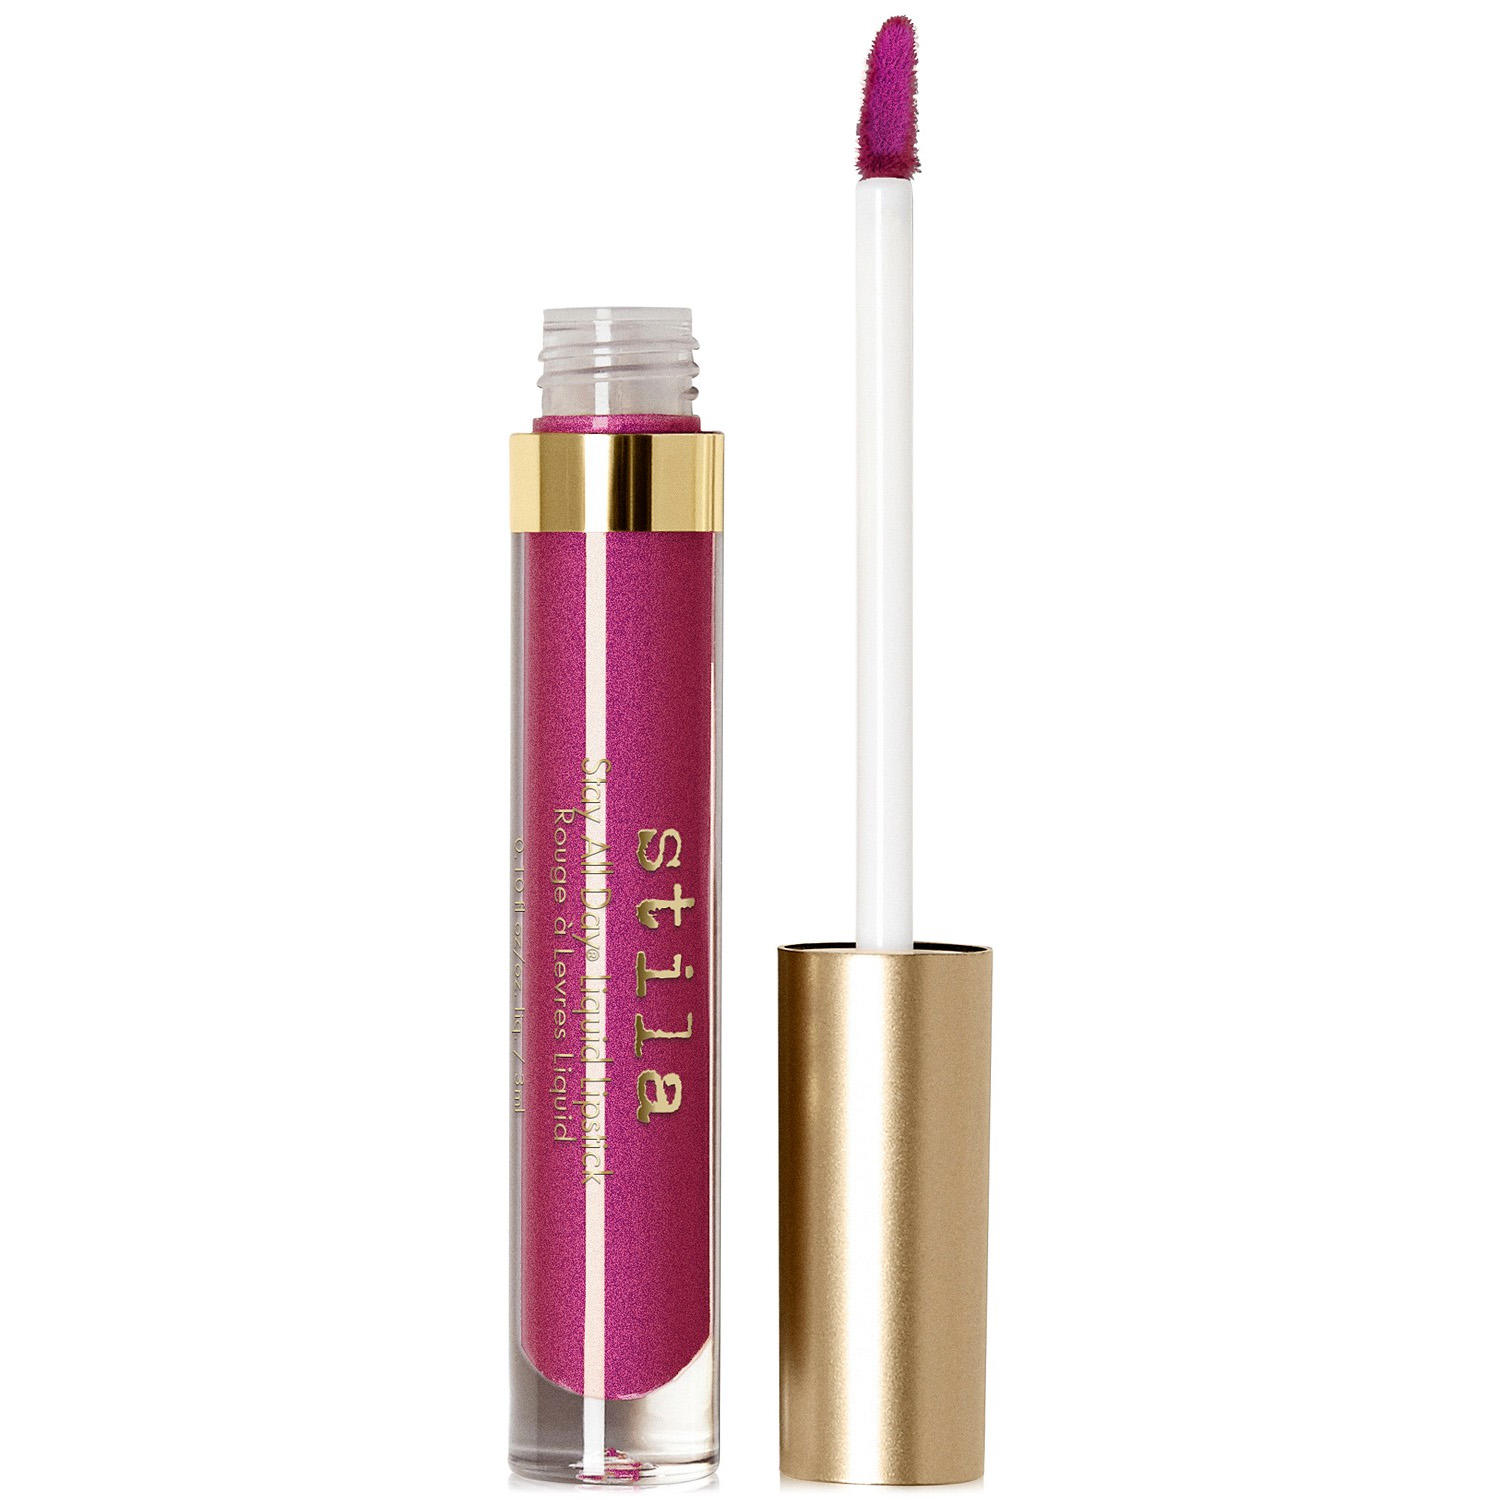 Stila Stay All Day Liquid Lipstick Lume Shimmer